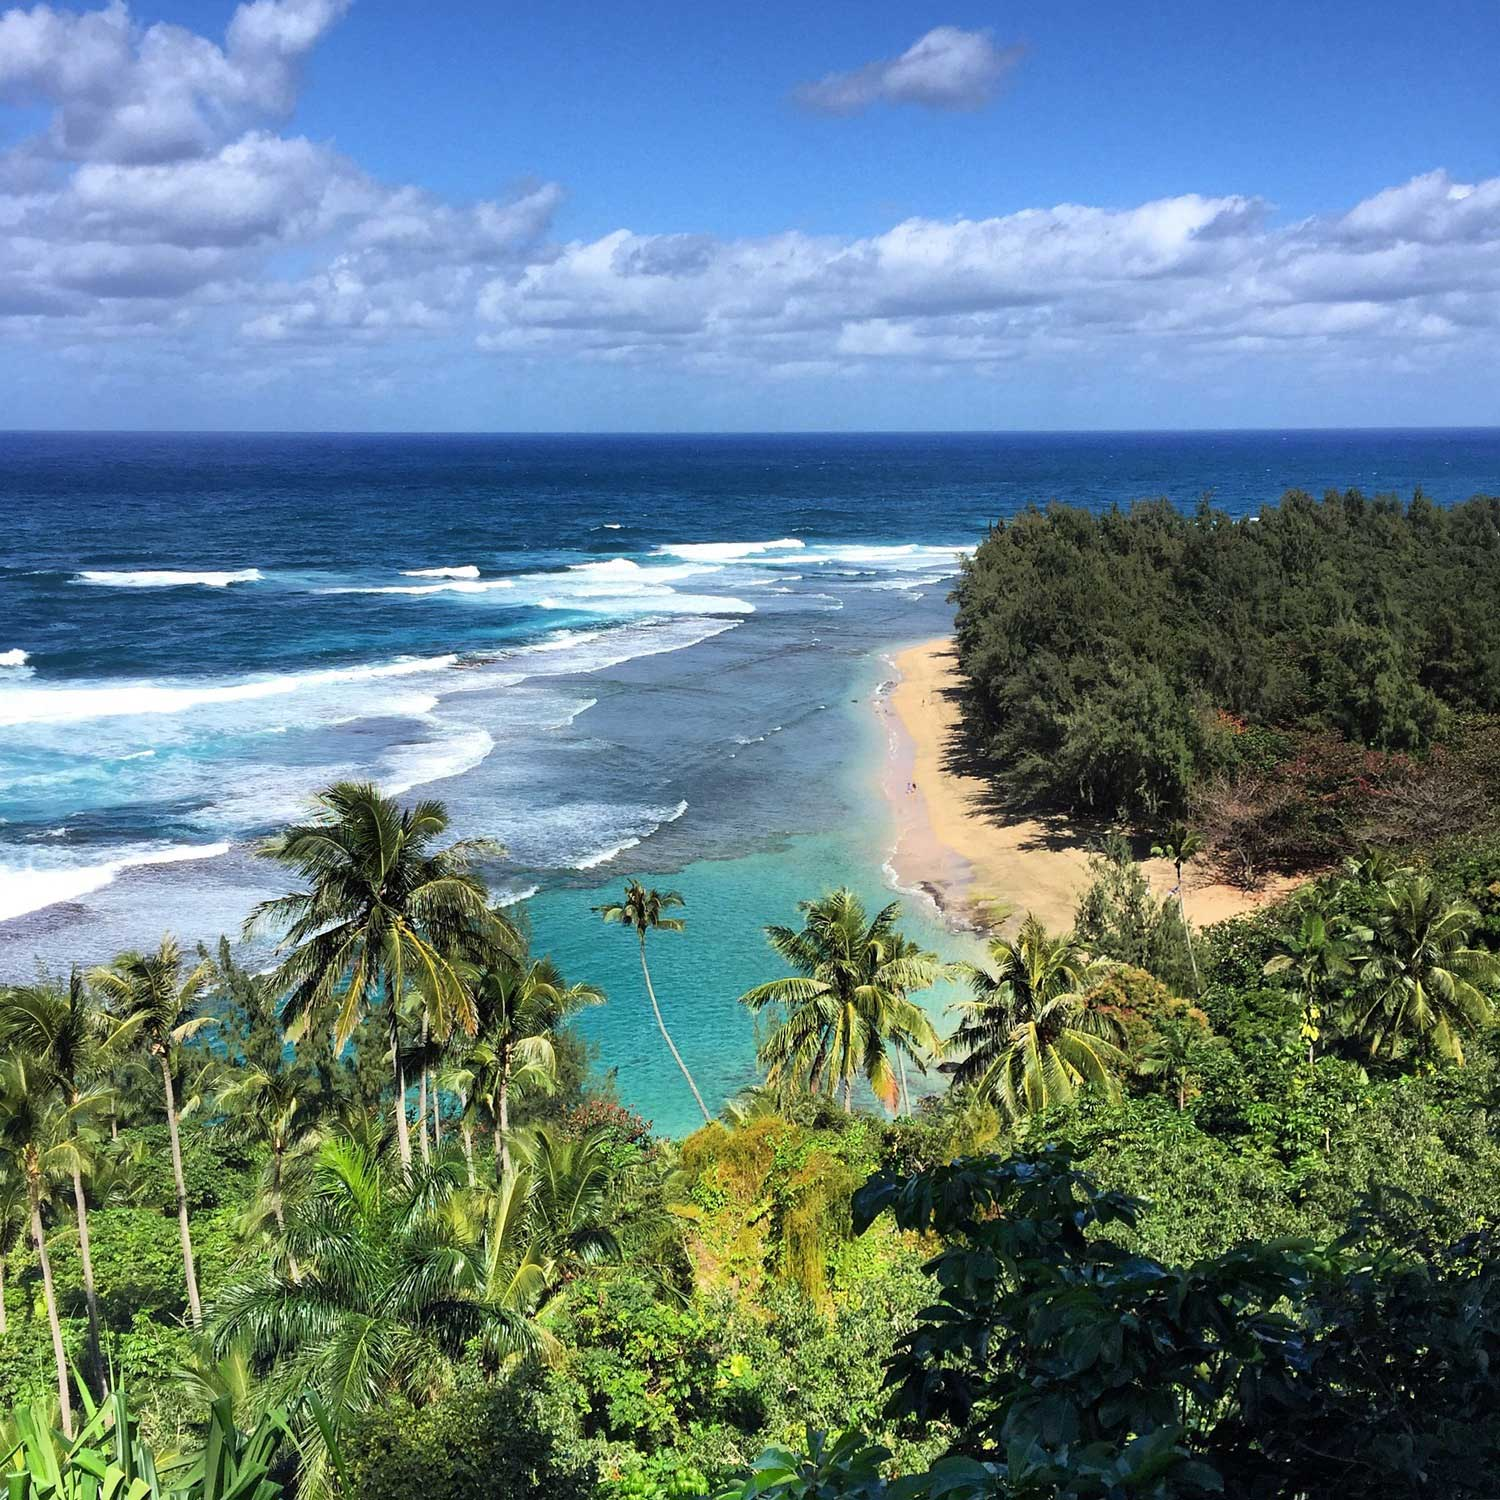 kauai_hawaii_city_guide_itsbeautifulhere17.jpg